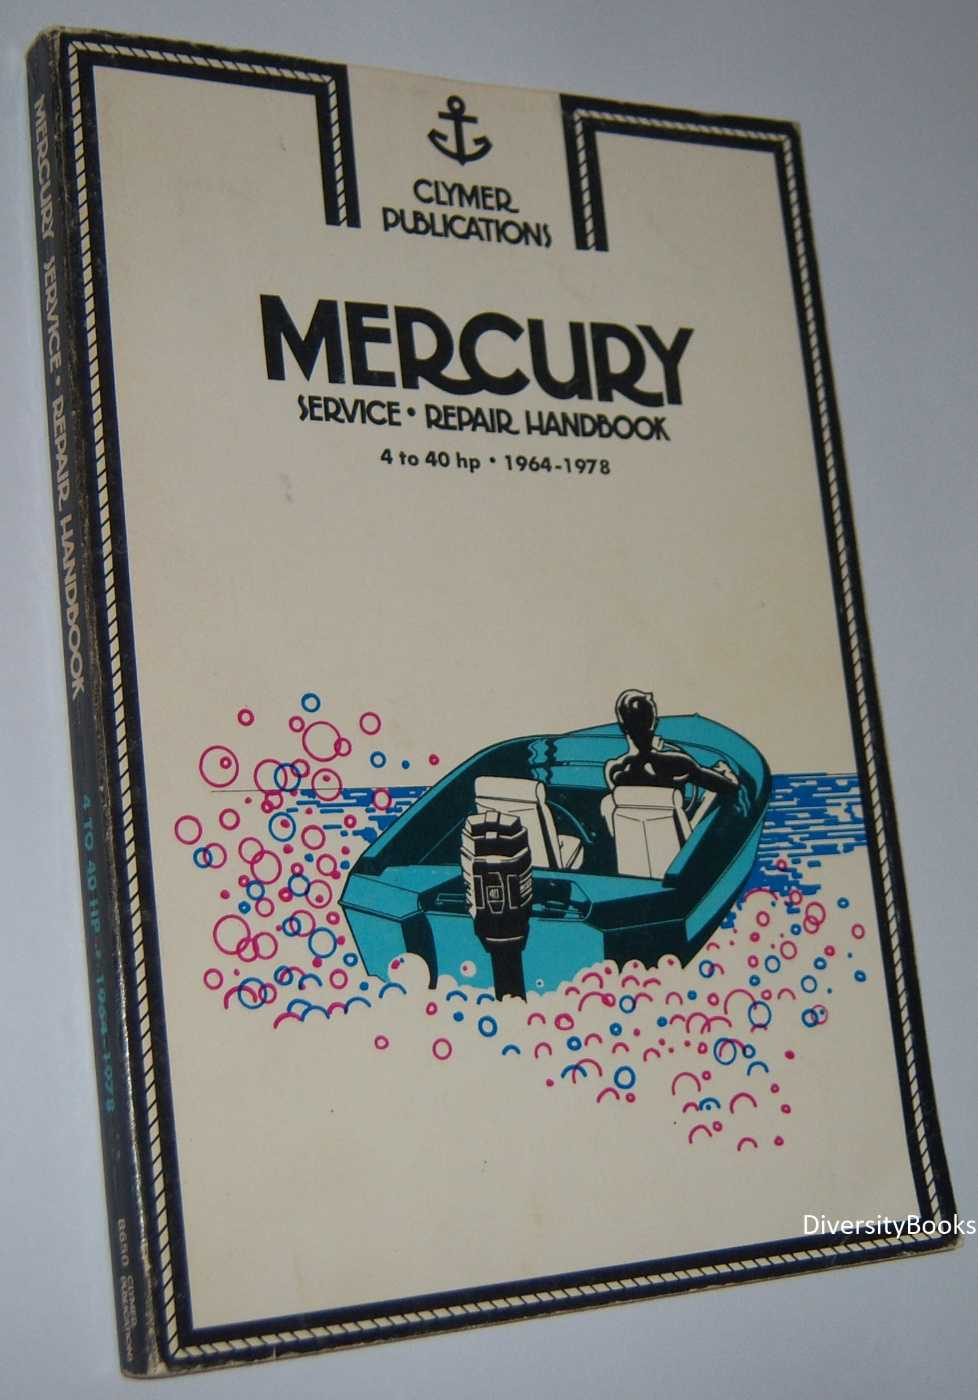 Image for MERCURY SERVICE-REPAIR HANDBOOK 4 to 40 hp 1964-1978